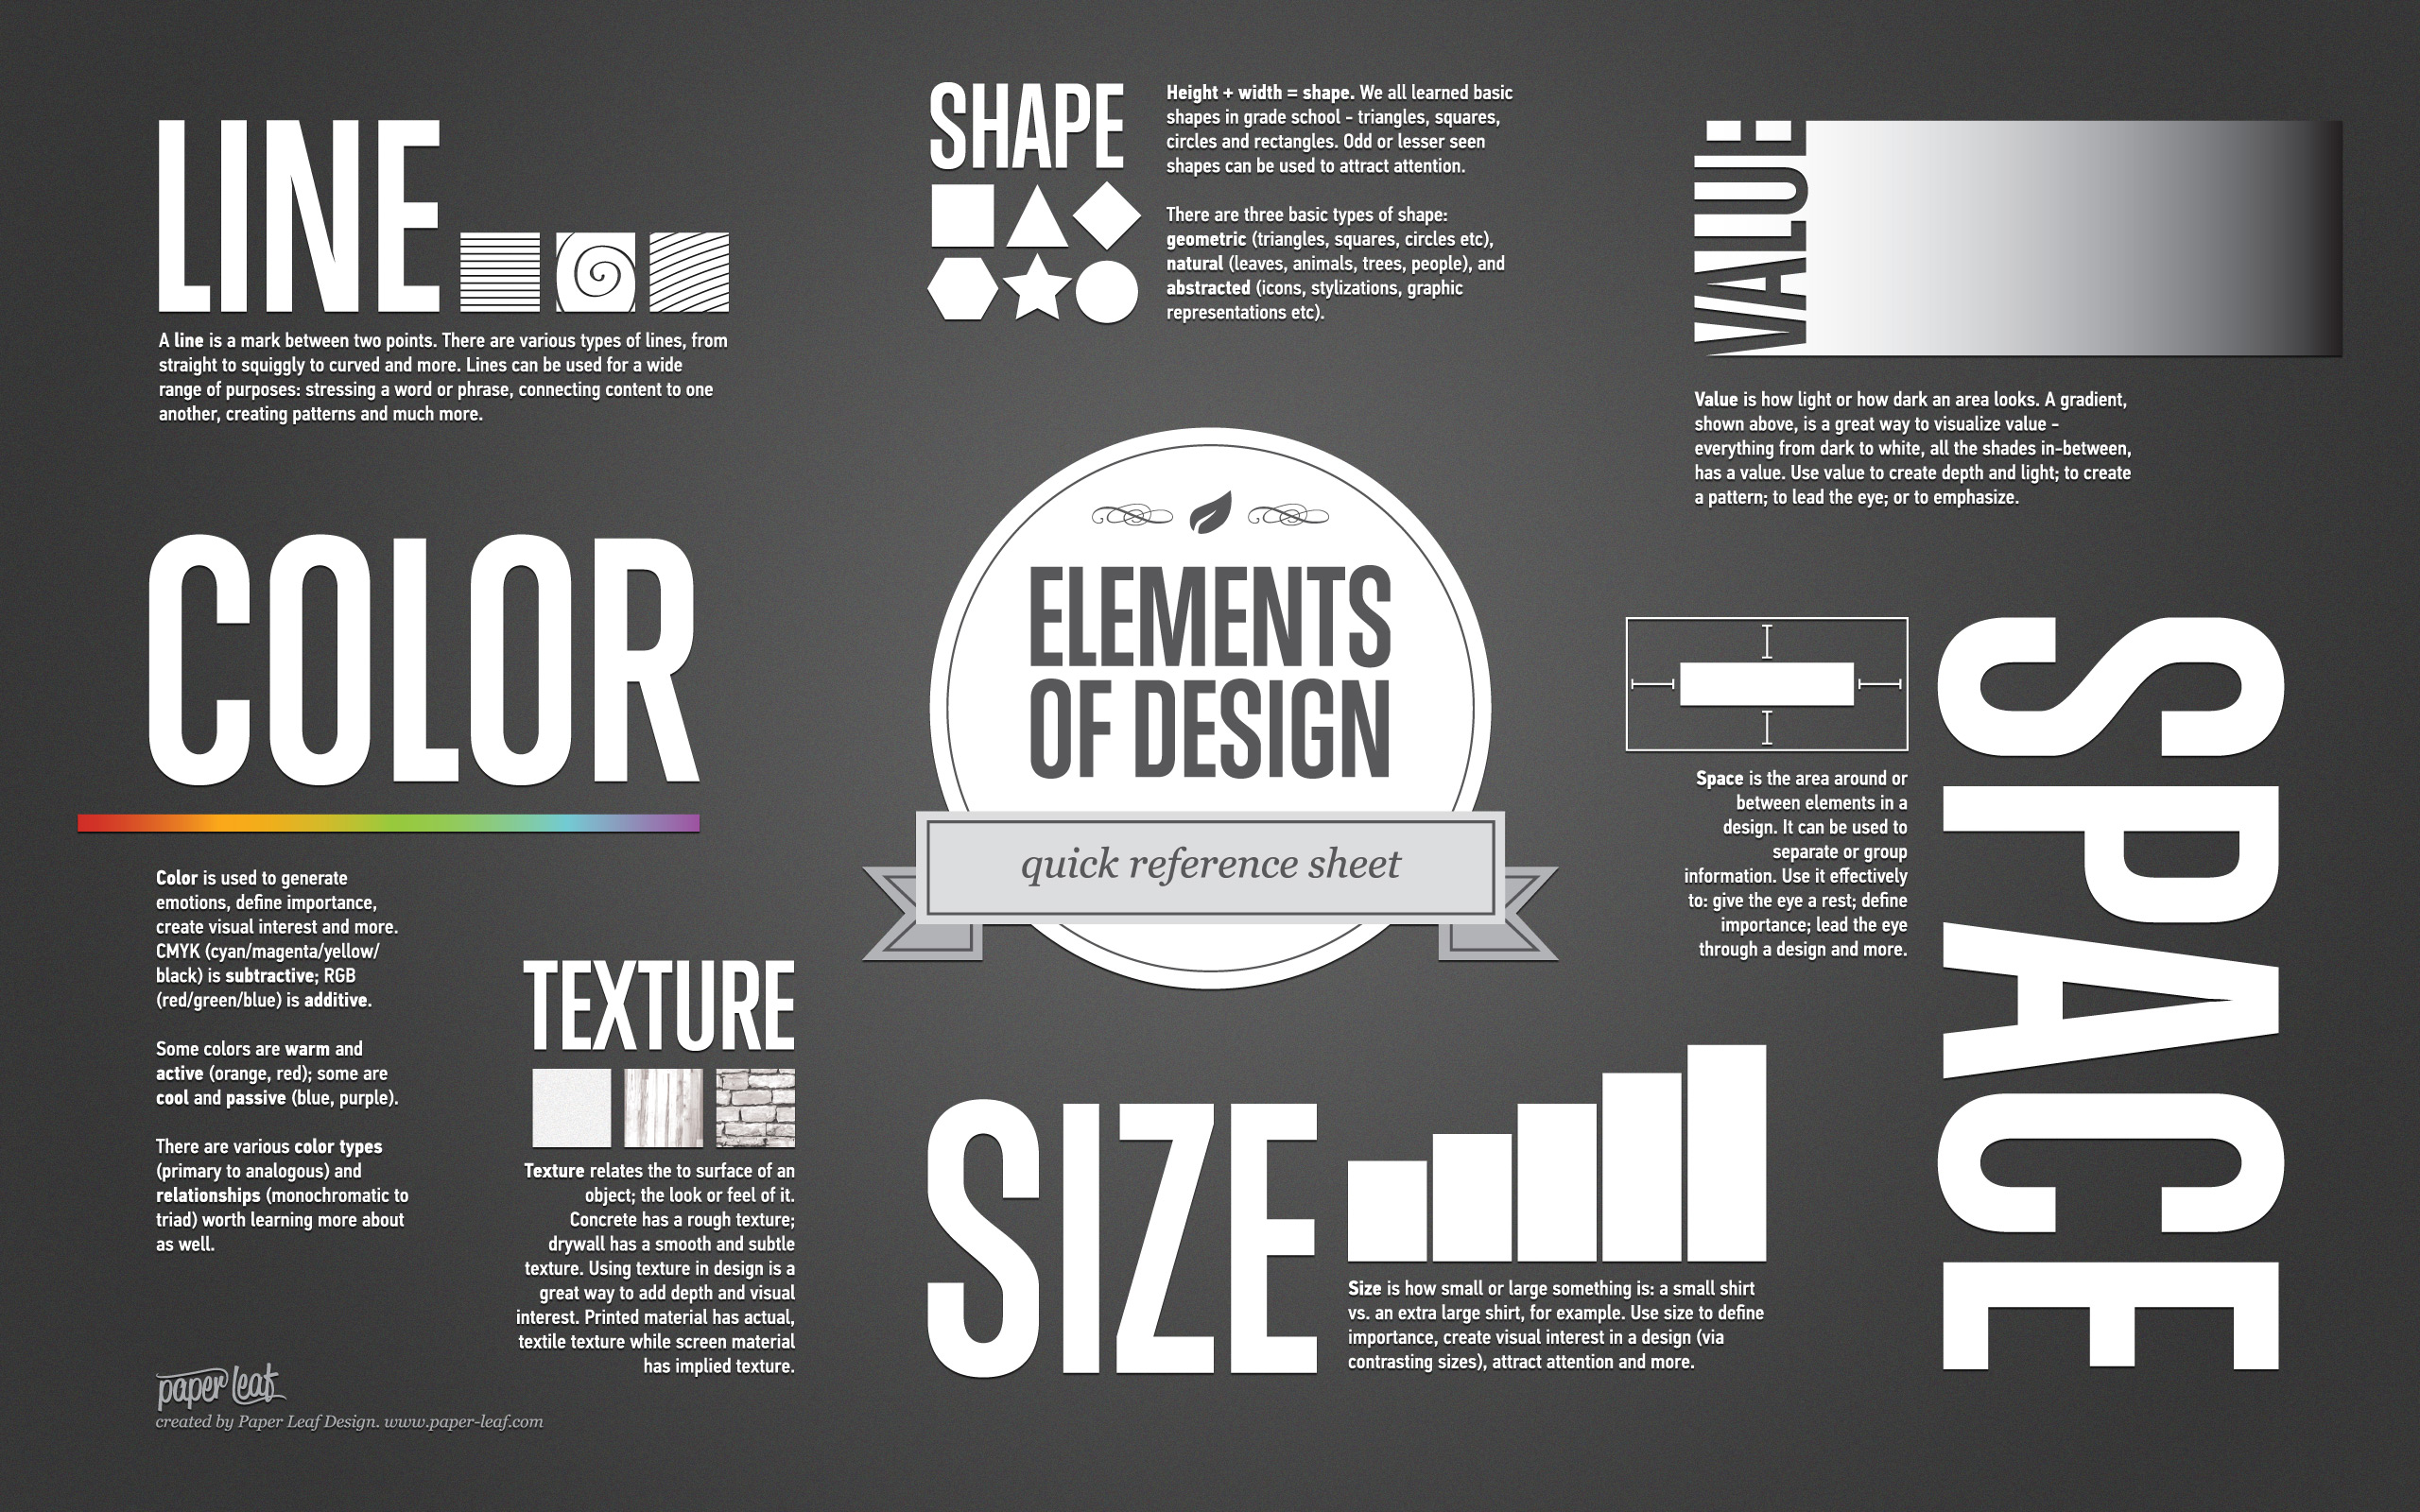 Elements And Design : What makes good design basic elements and principles